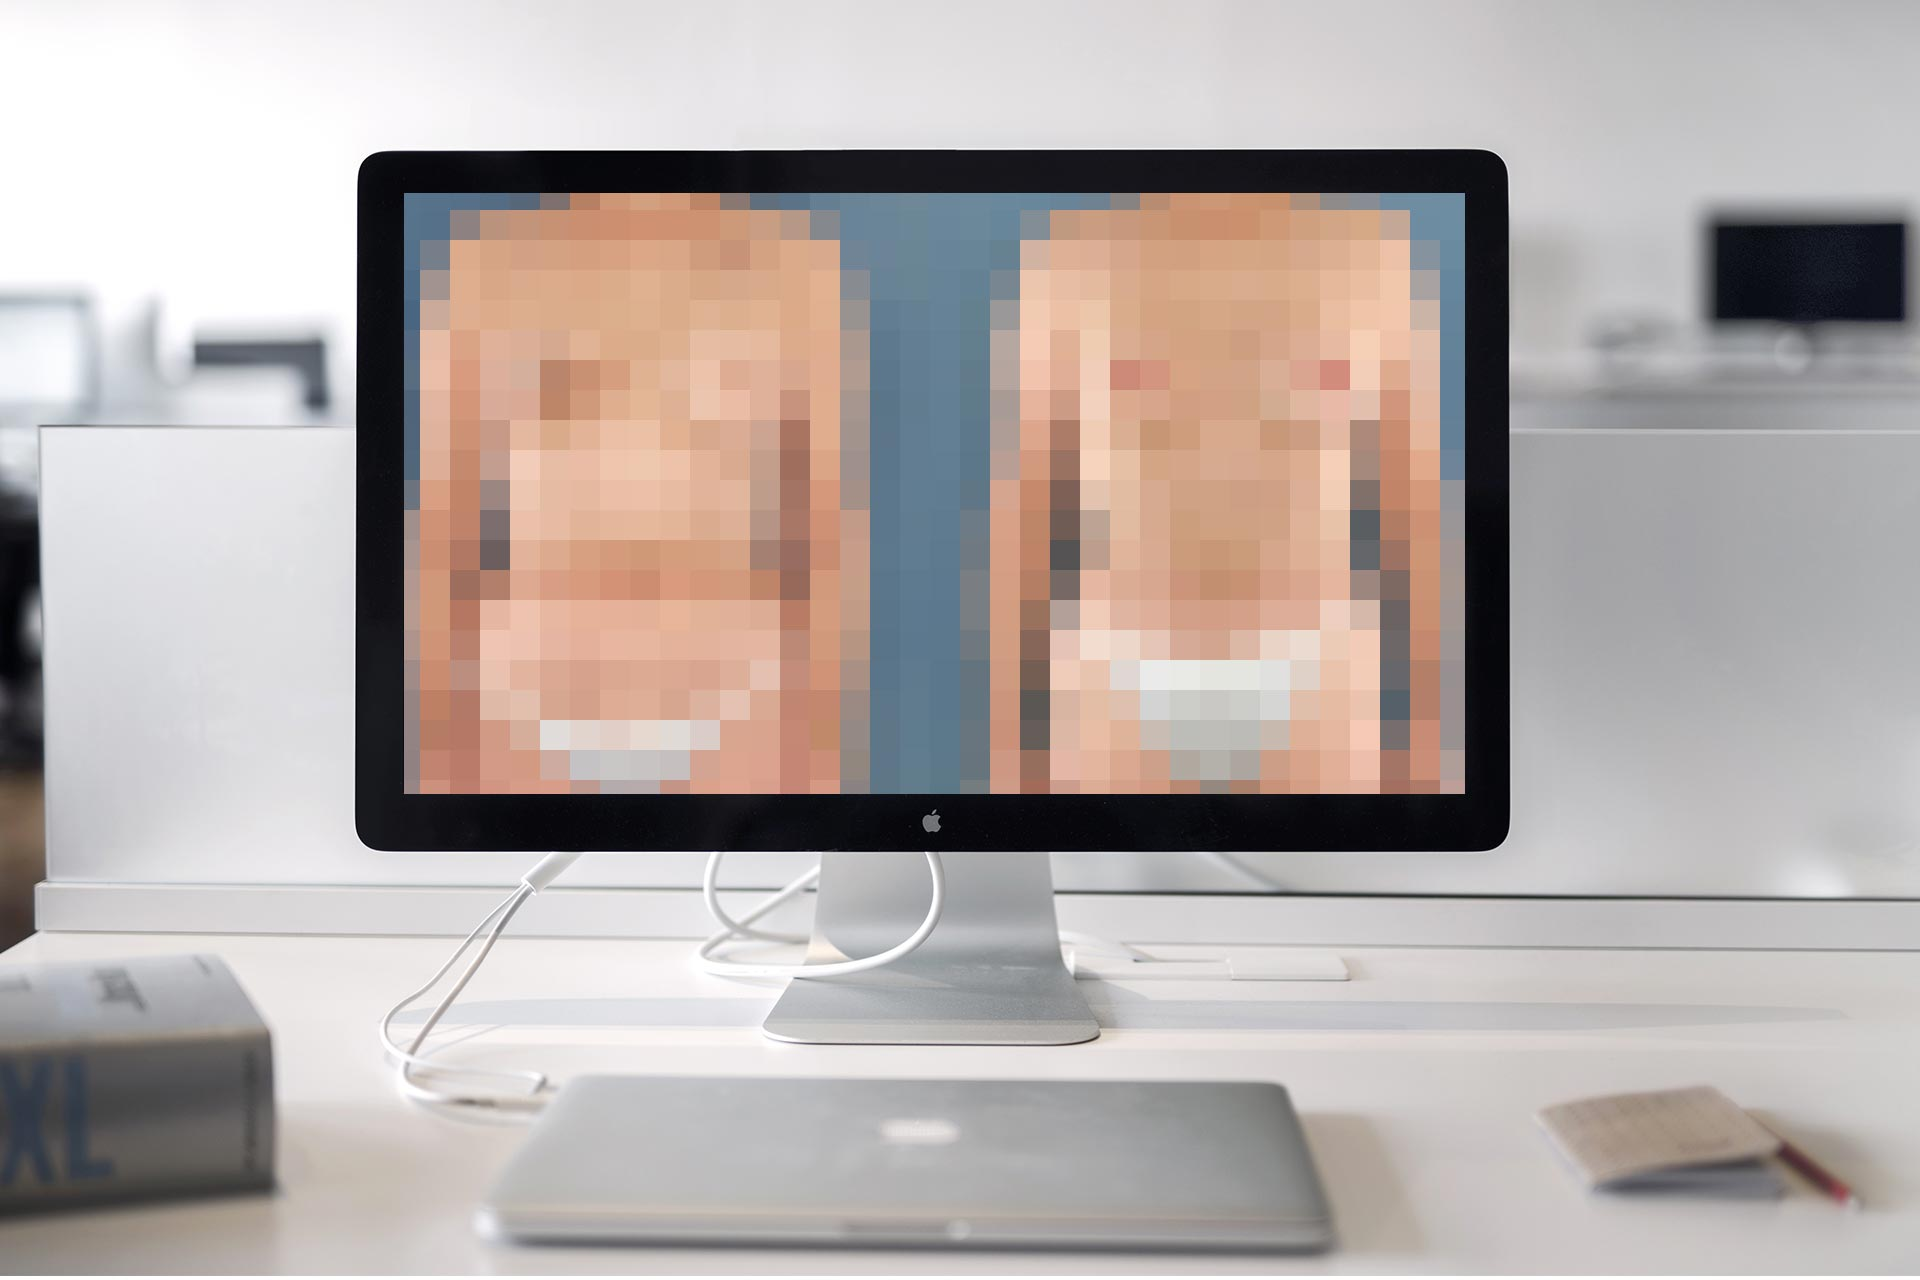 computer screen with pixilated bodies